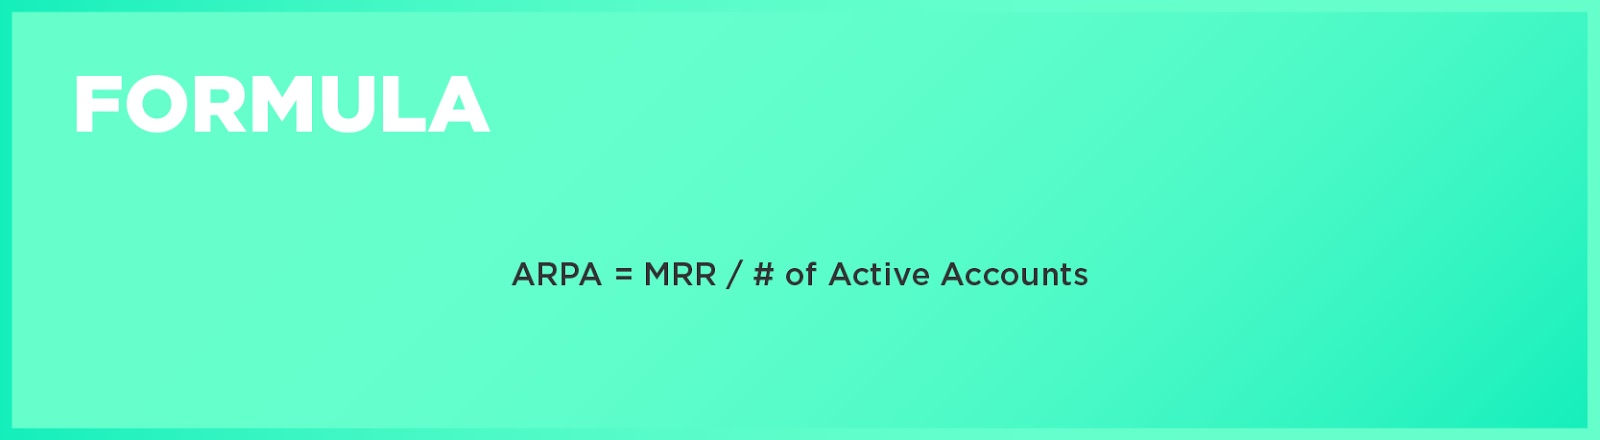 Formula: ARPA = MRR / # of Active Accounts